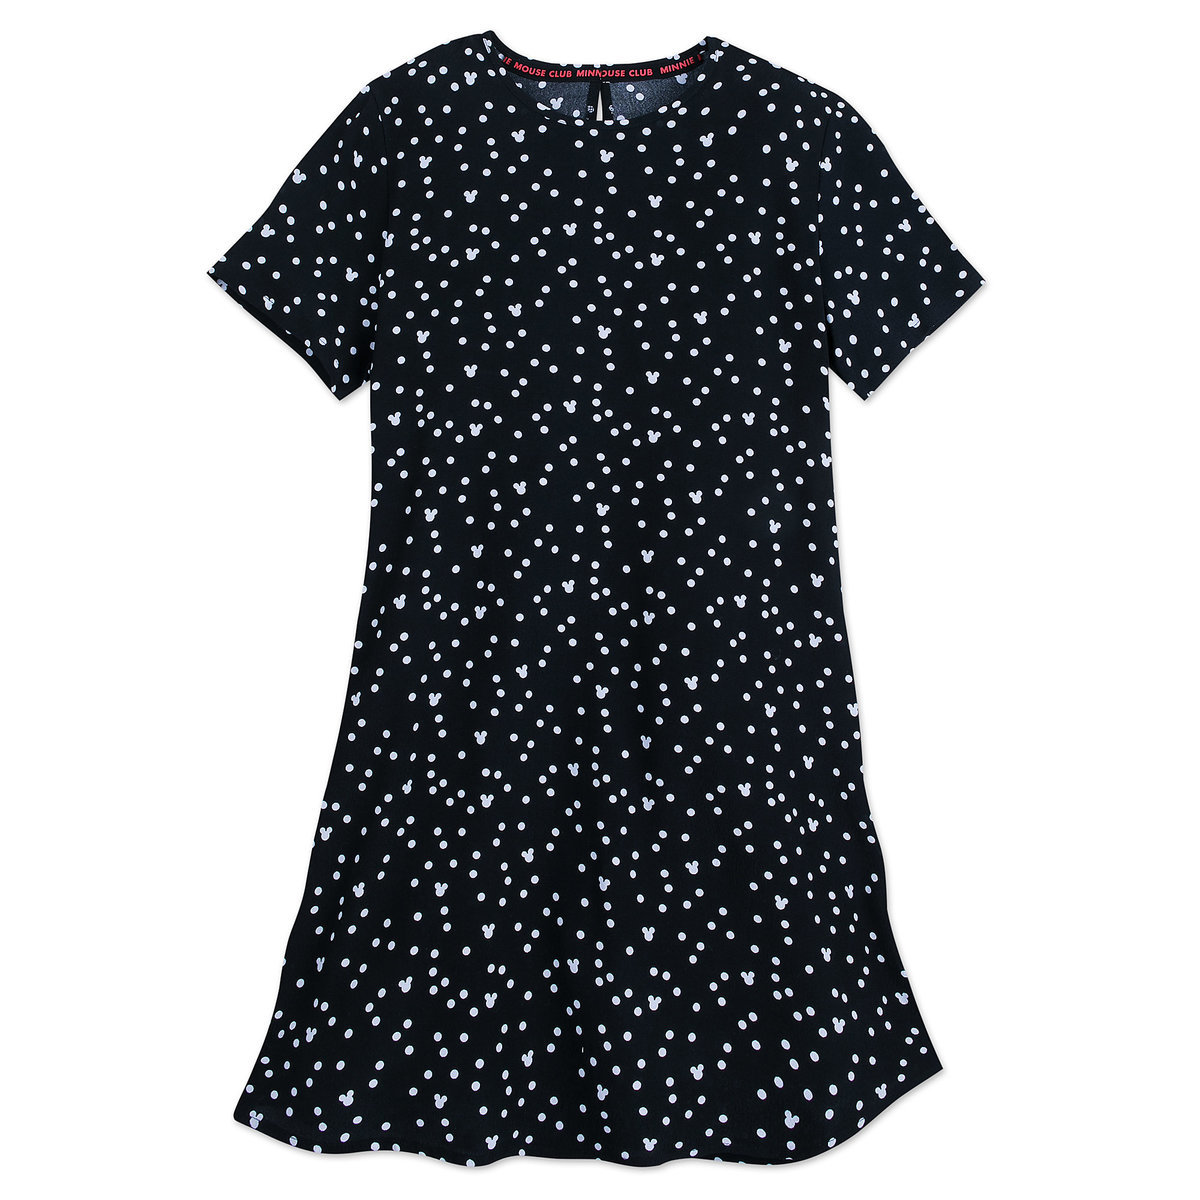 b8b63e7a2 Product Image of Minnie Mouse Polka Dot Dress for Women # 1